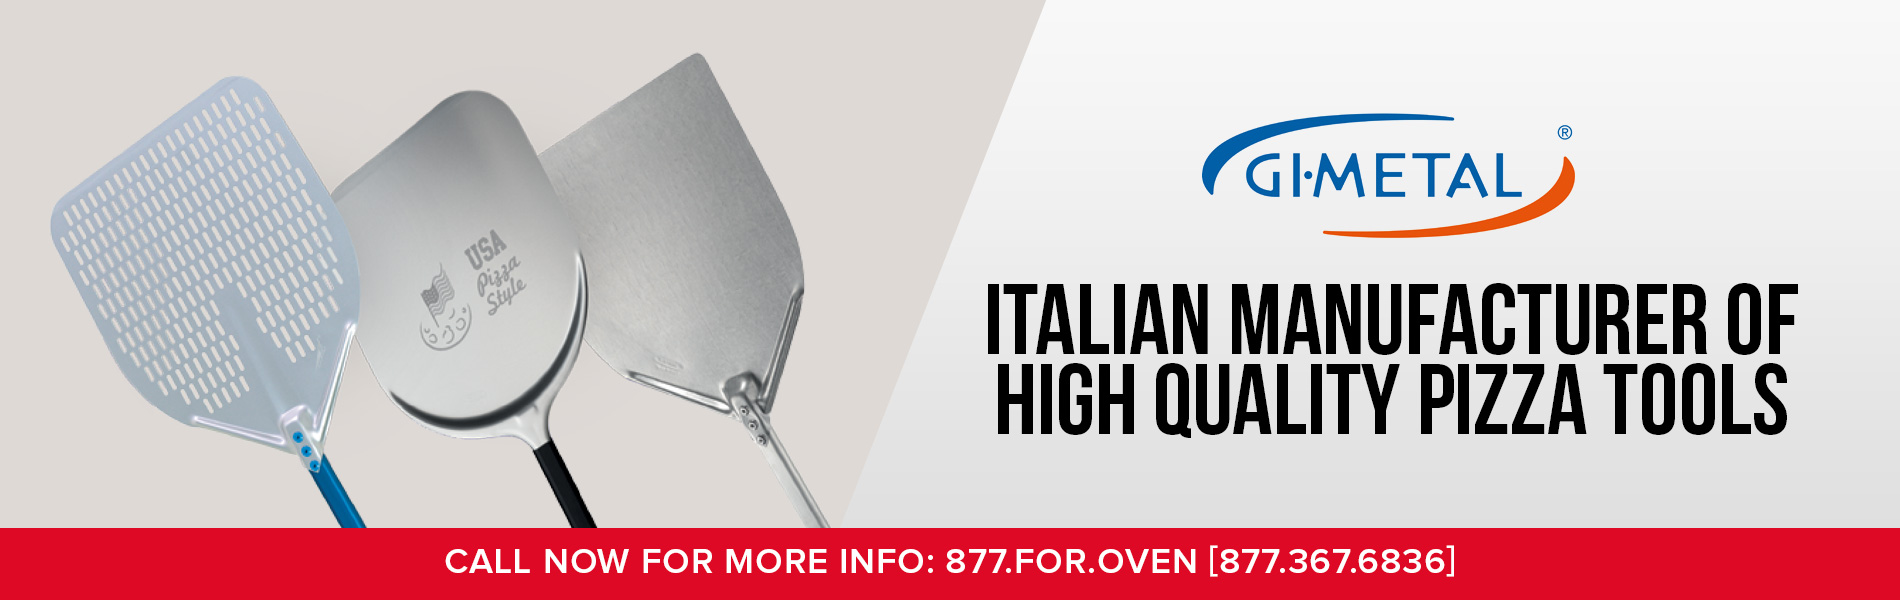 Glmetal Pizza Oven